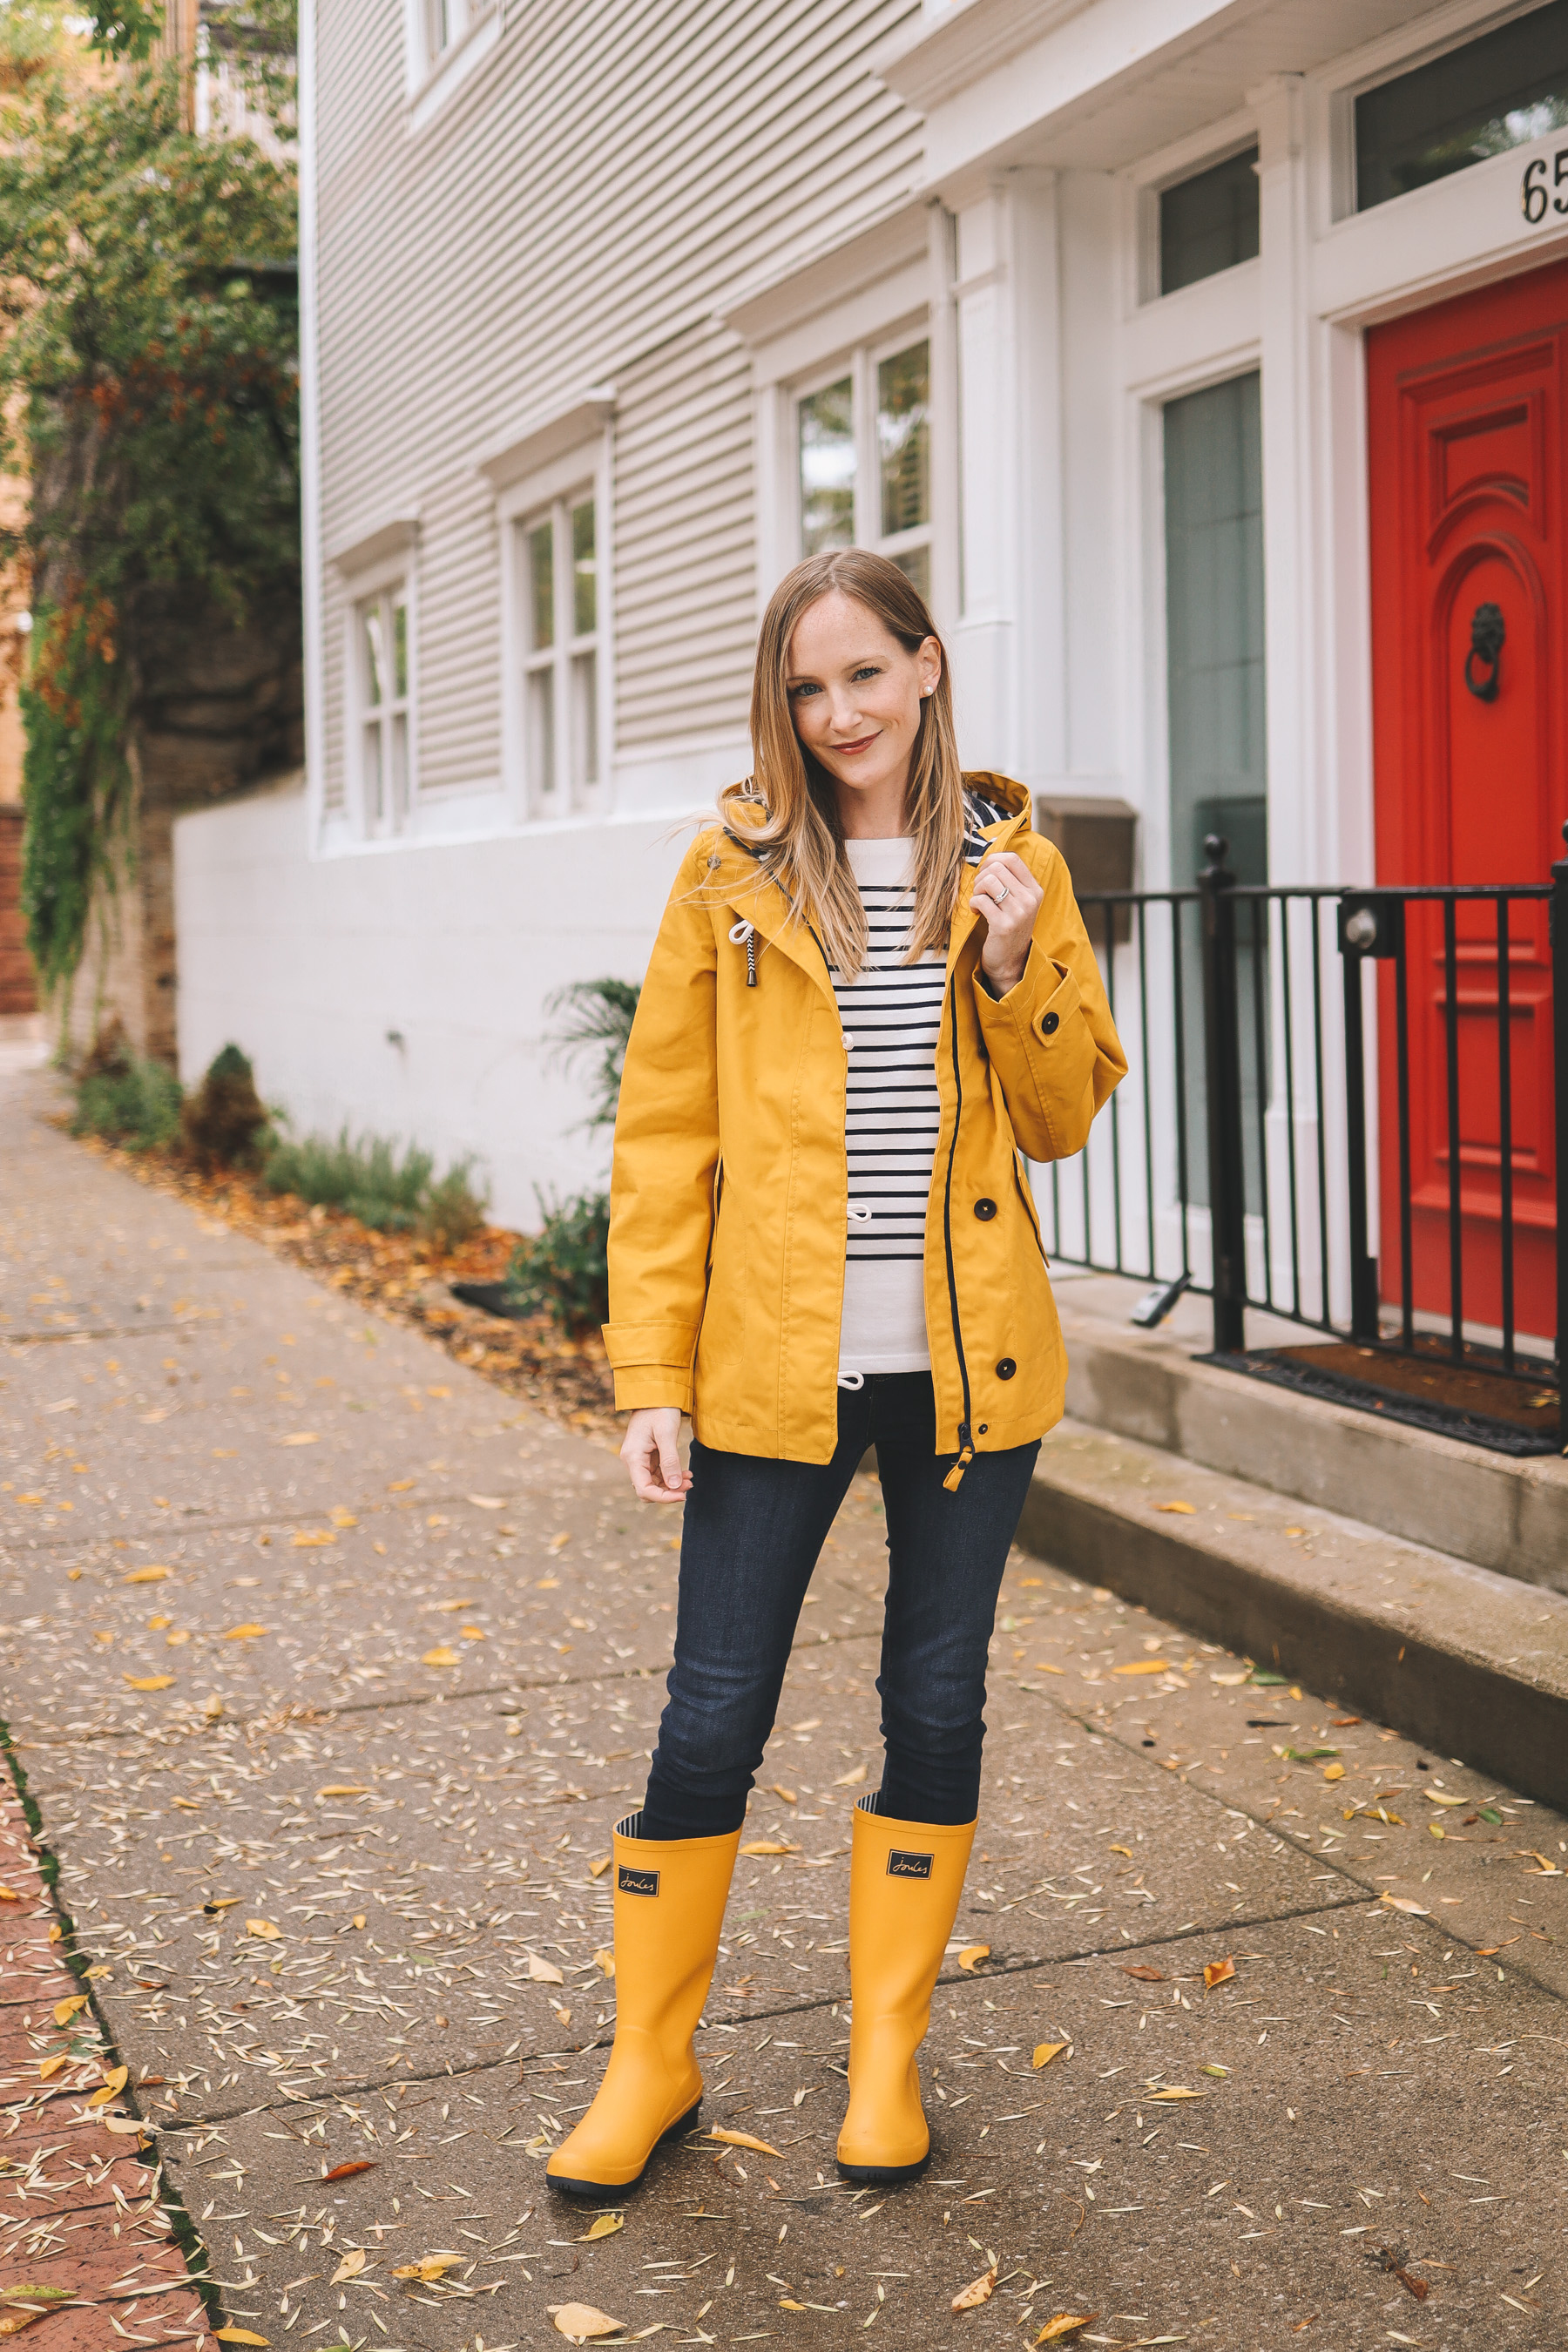 kelly in Joules rain gear